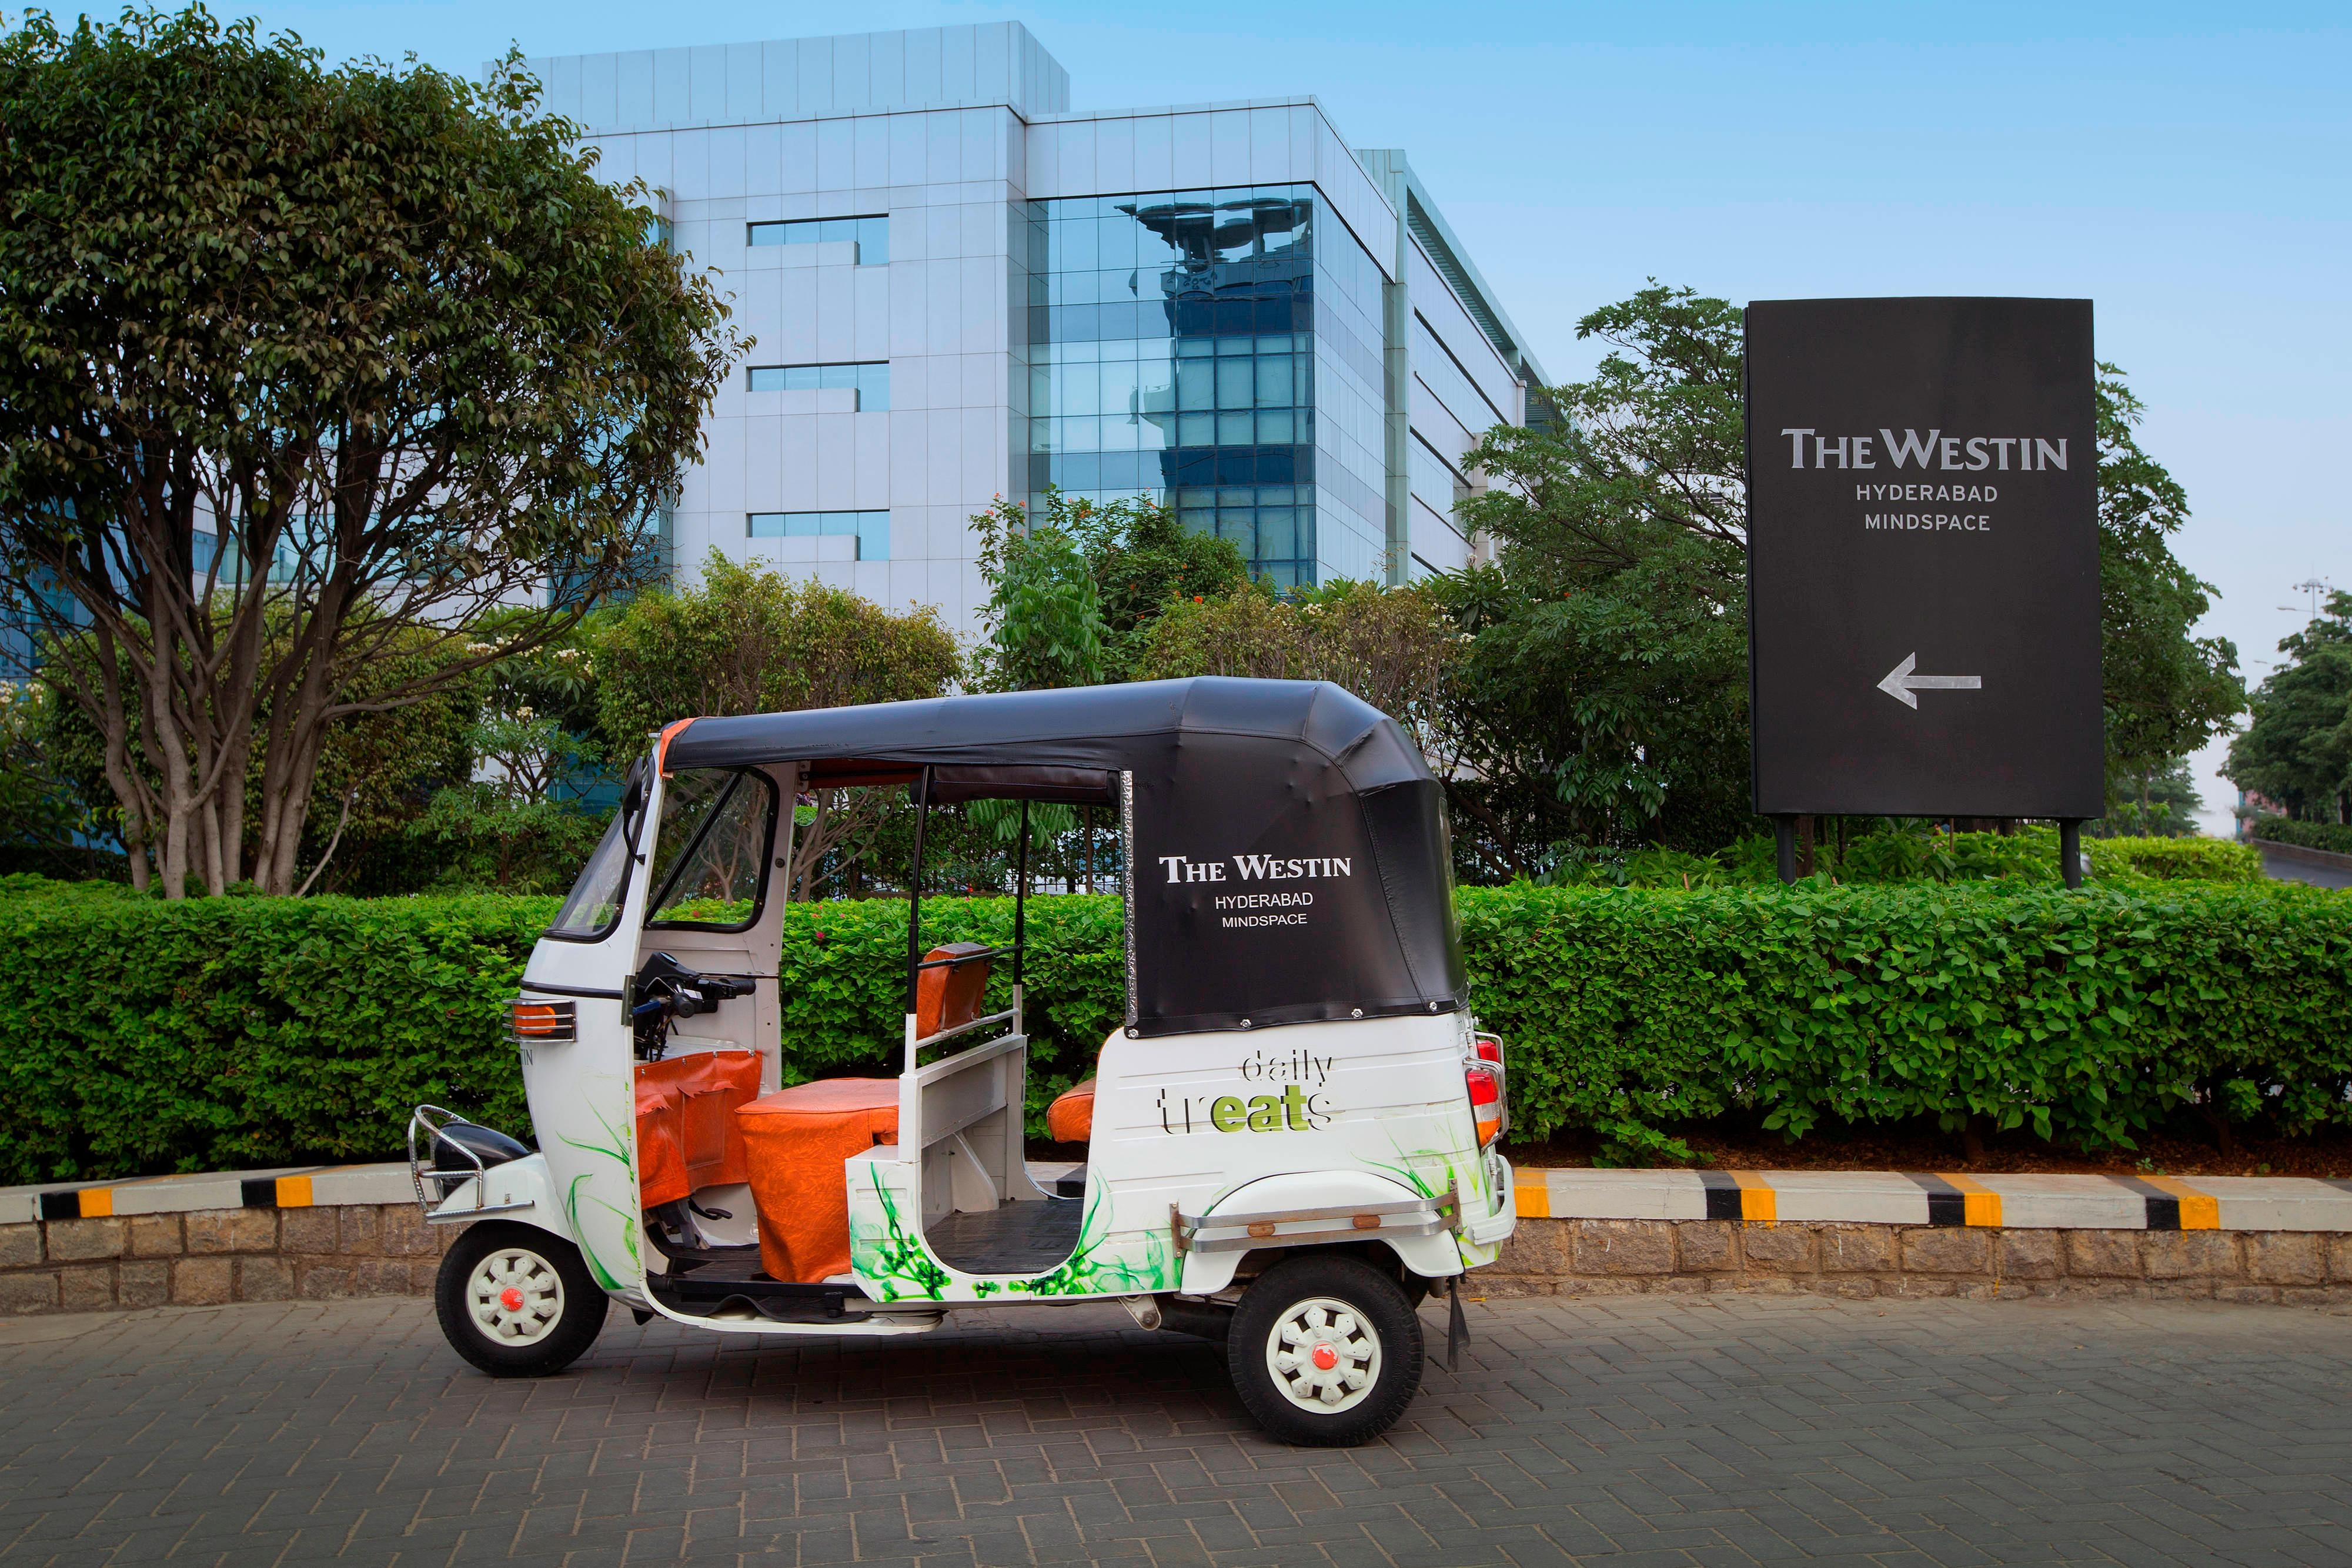 Tuk Tuk at The Westin Hyderabad